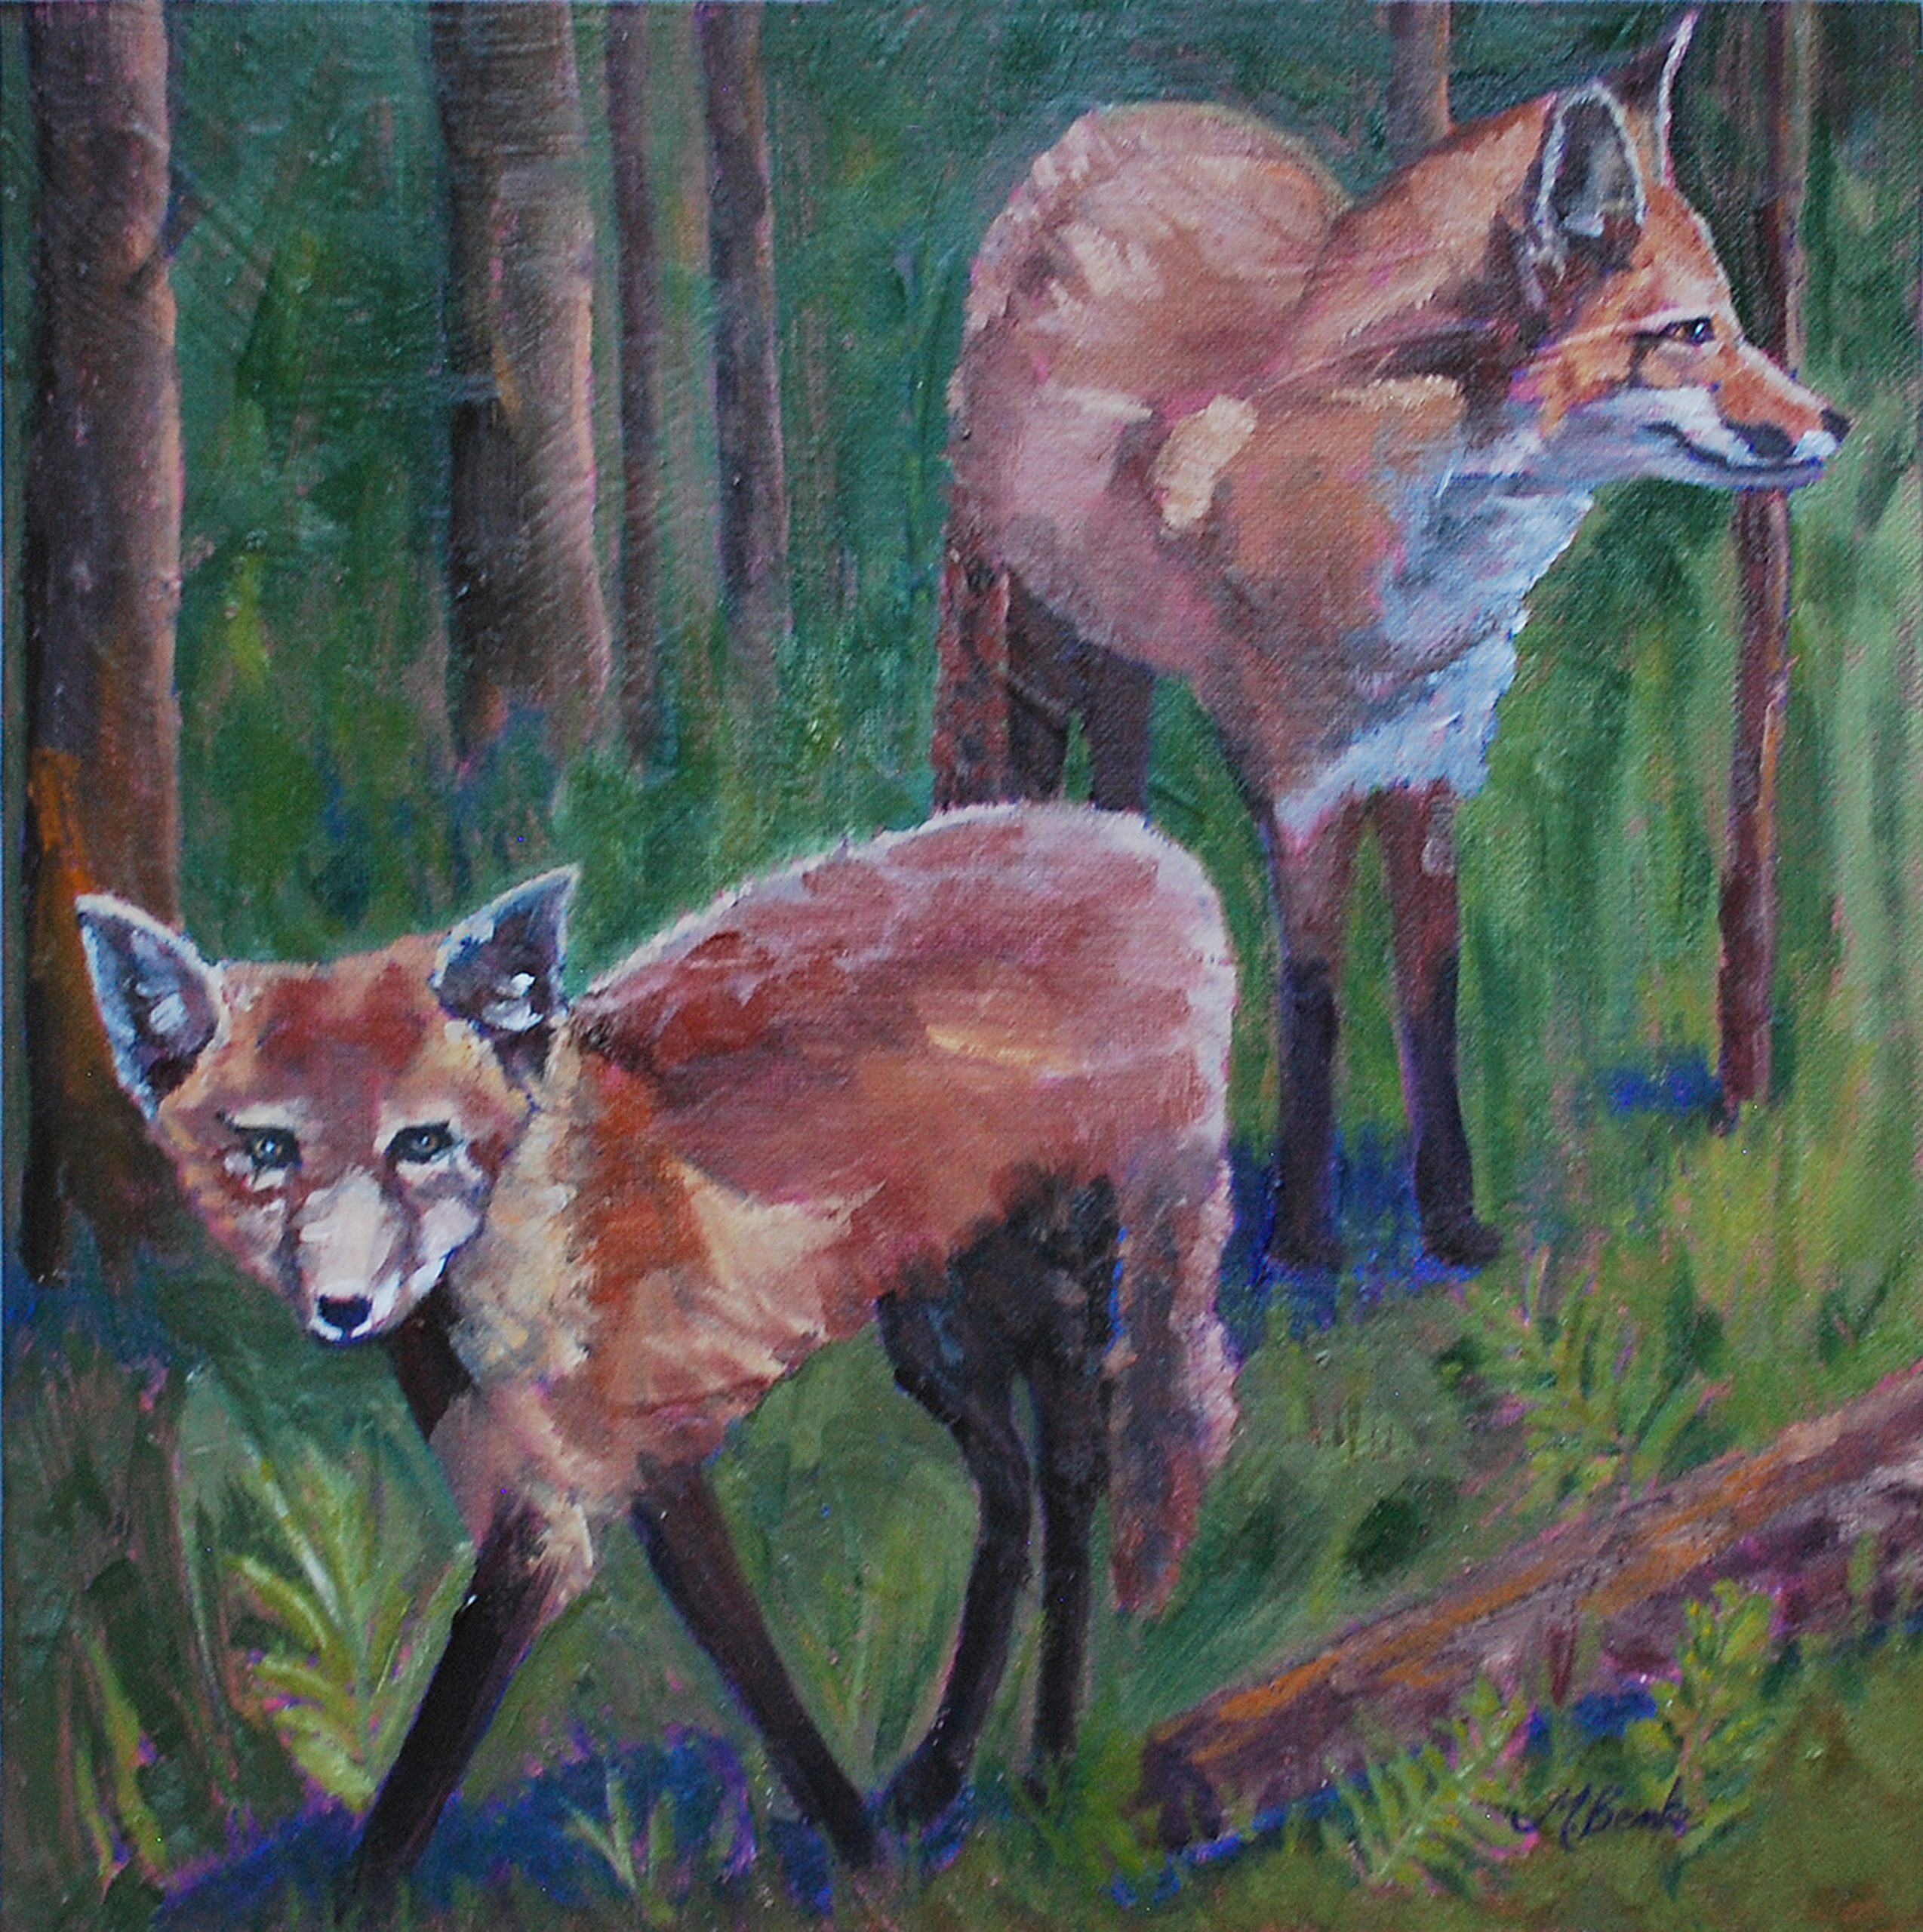 For anyone who loves foxes, this striking oil painting features a pair of kits out looking for adventure as they emerge from a deep green forest. Their fur is painted with strong brushstrokes in various shade of red, making a strong contrast with violet shadows and green foliage by Mary Benke